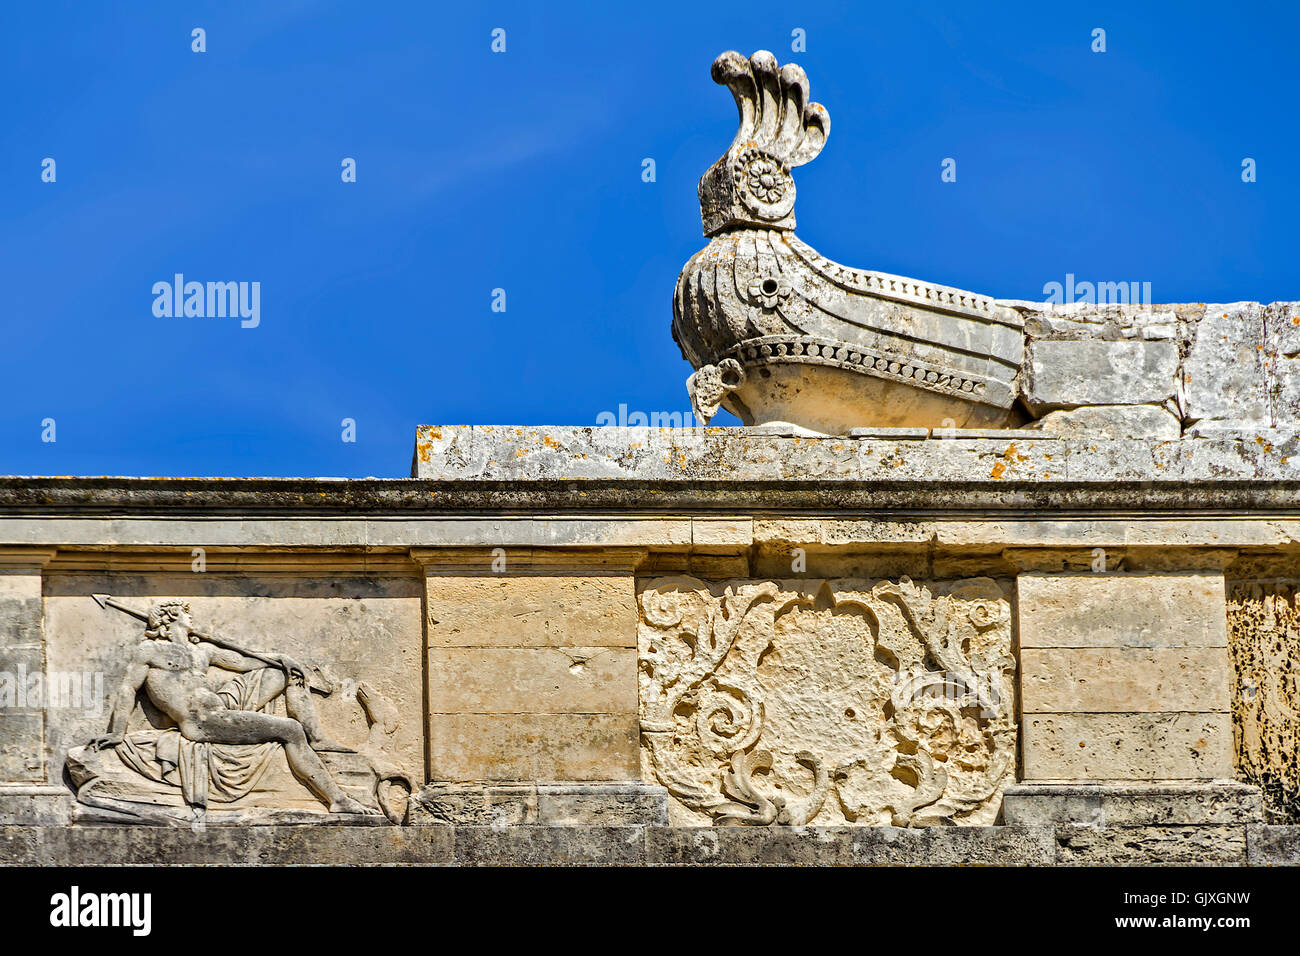 Wall Detail Of The Museum of Asian Art Corfu Greece - Stock Image